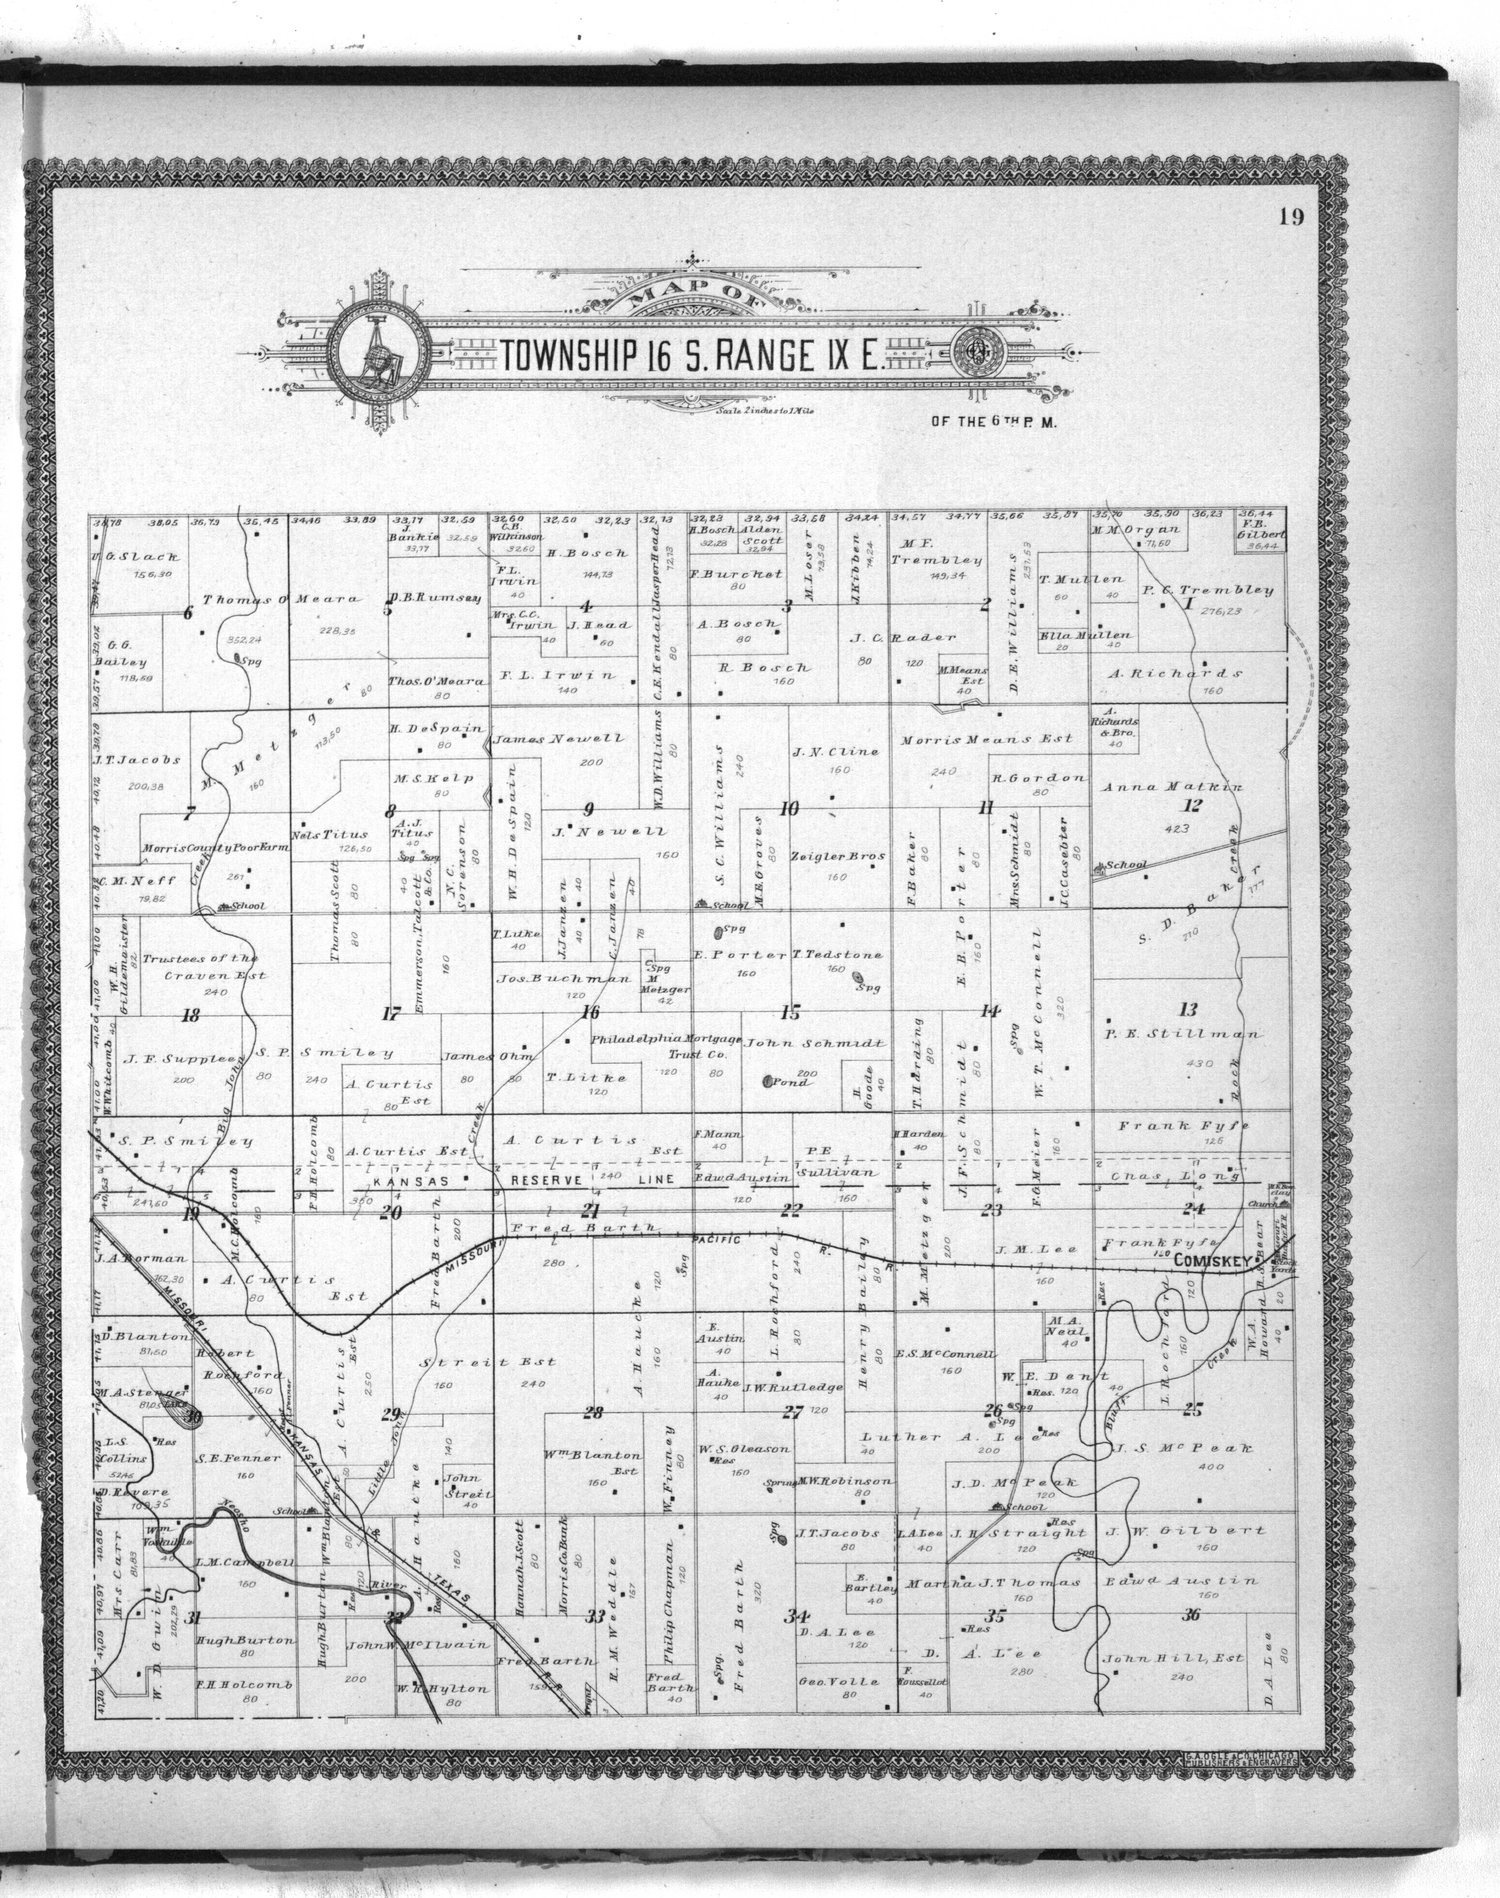 Standard atlas of Morris County, Kansas - 19